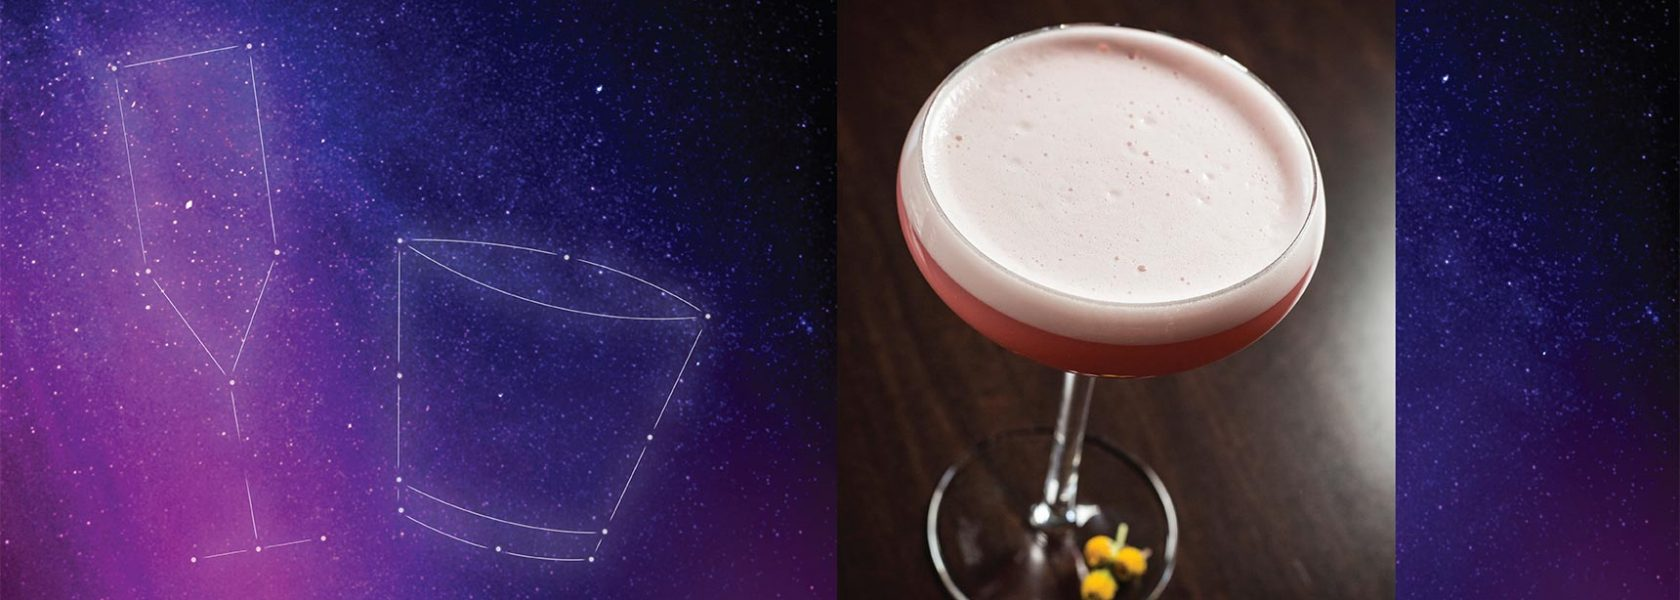 Foamy cocktail in champagne glass floating on night sky background